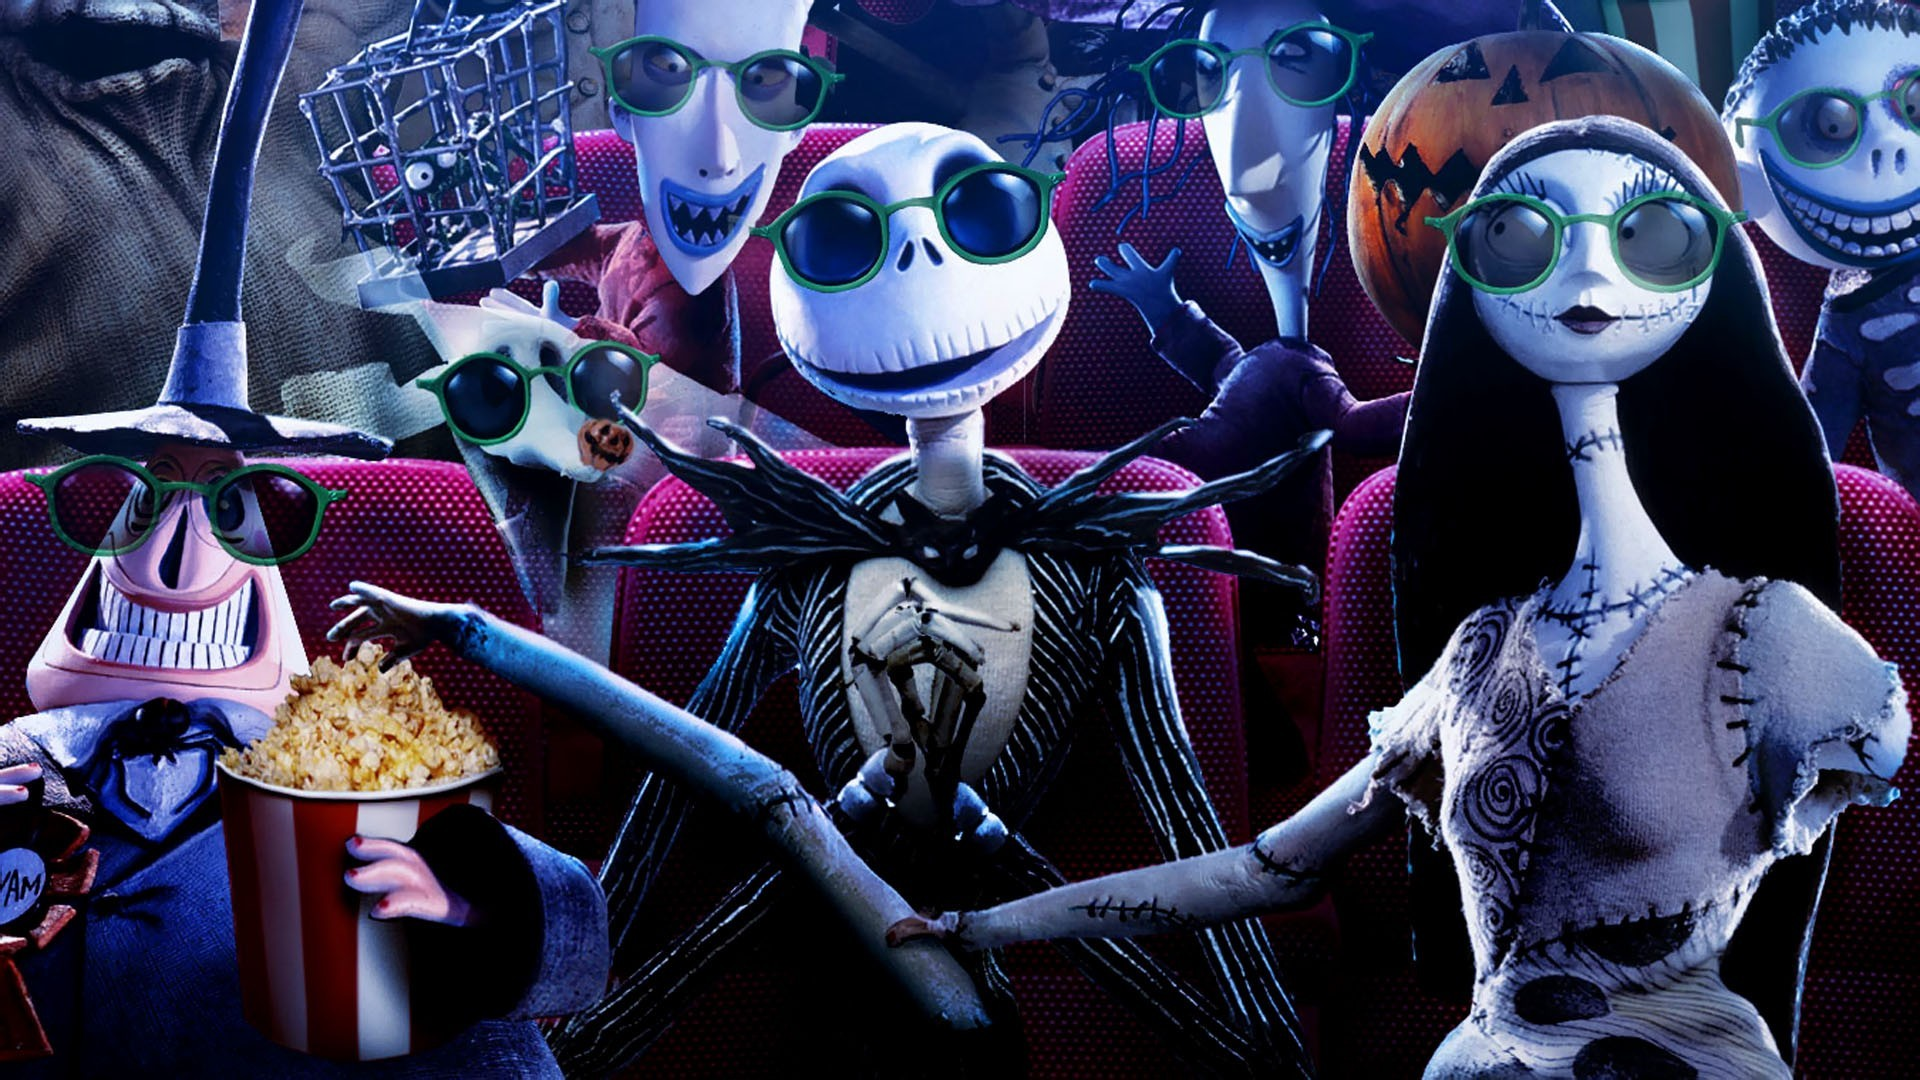 Best 35 The Nightmare Before Christmas Desktop Background on 1920x1080